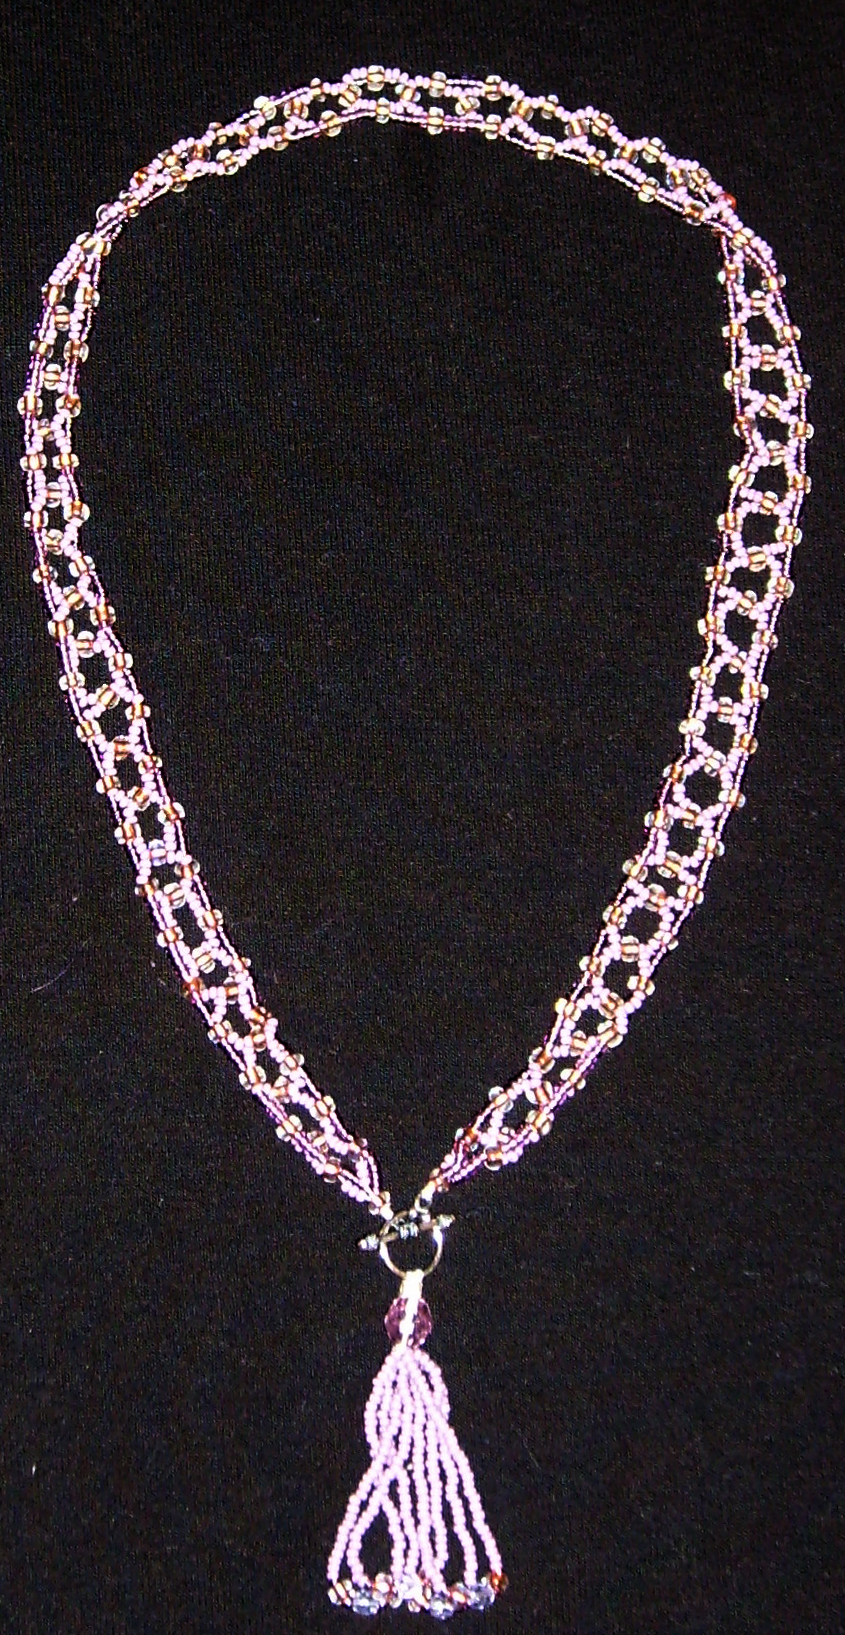 Free bead patterns for making your own necklaces